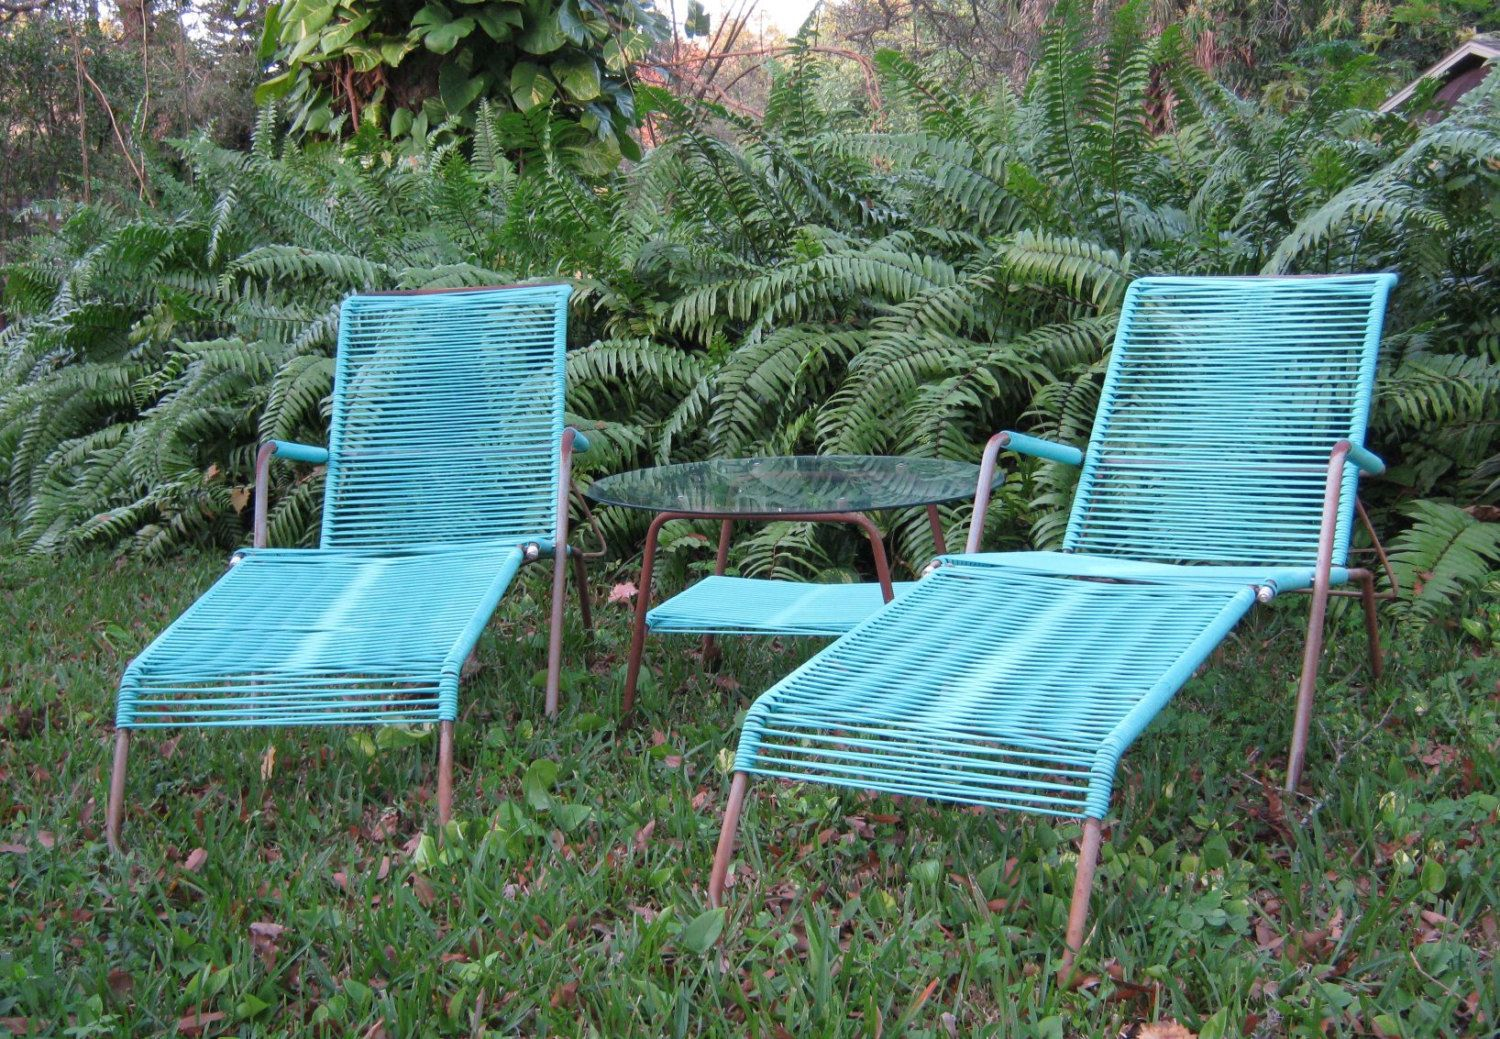 Vintage Lawn Furniture    Turquoise Patio Chairs    Lounge Chairs U0026 Table  By Telescope